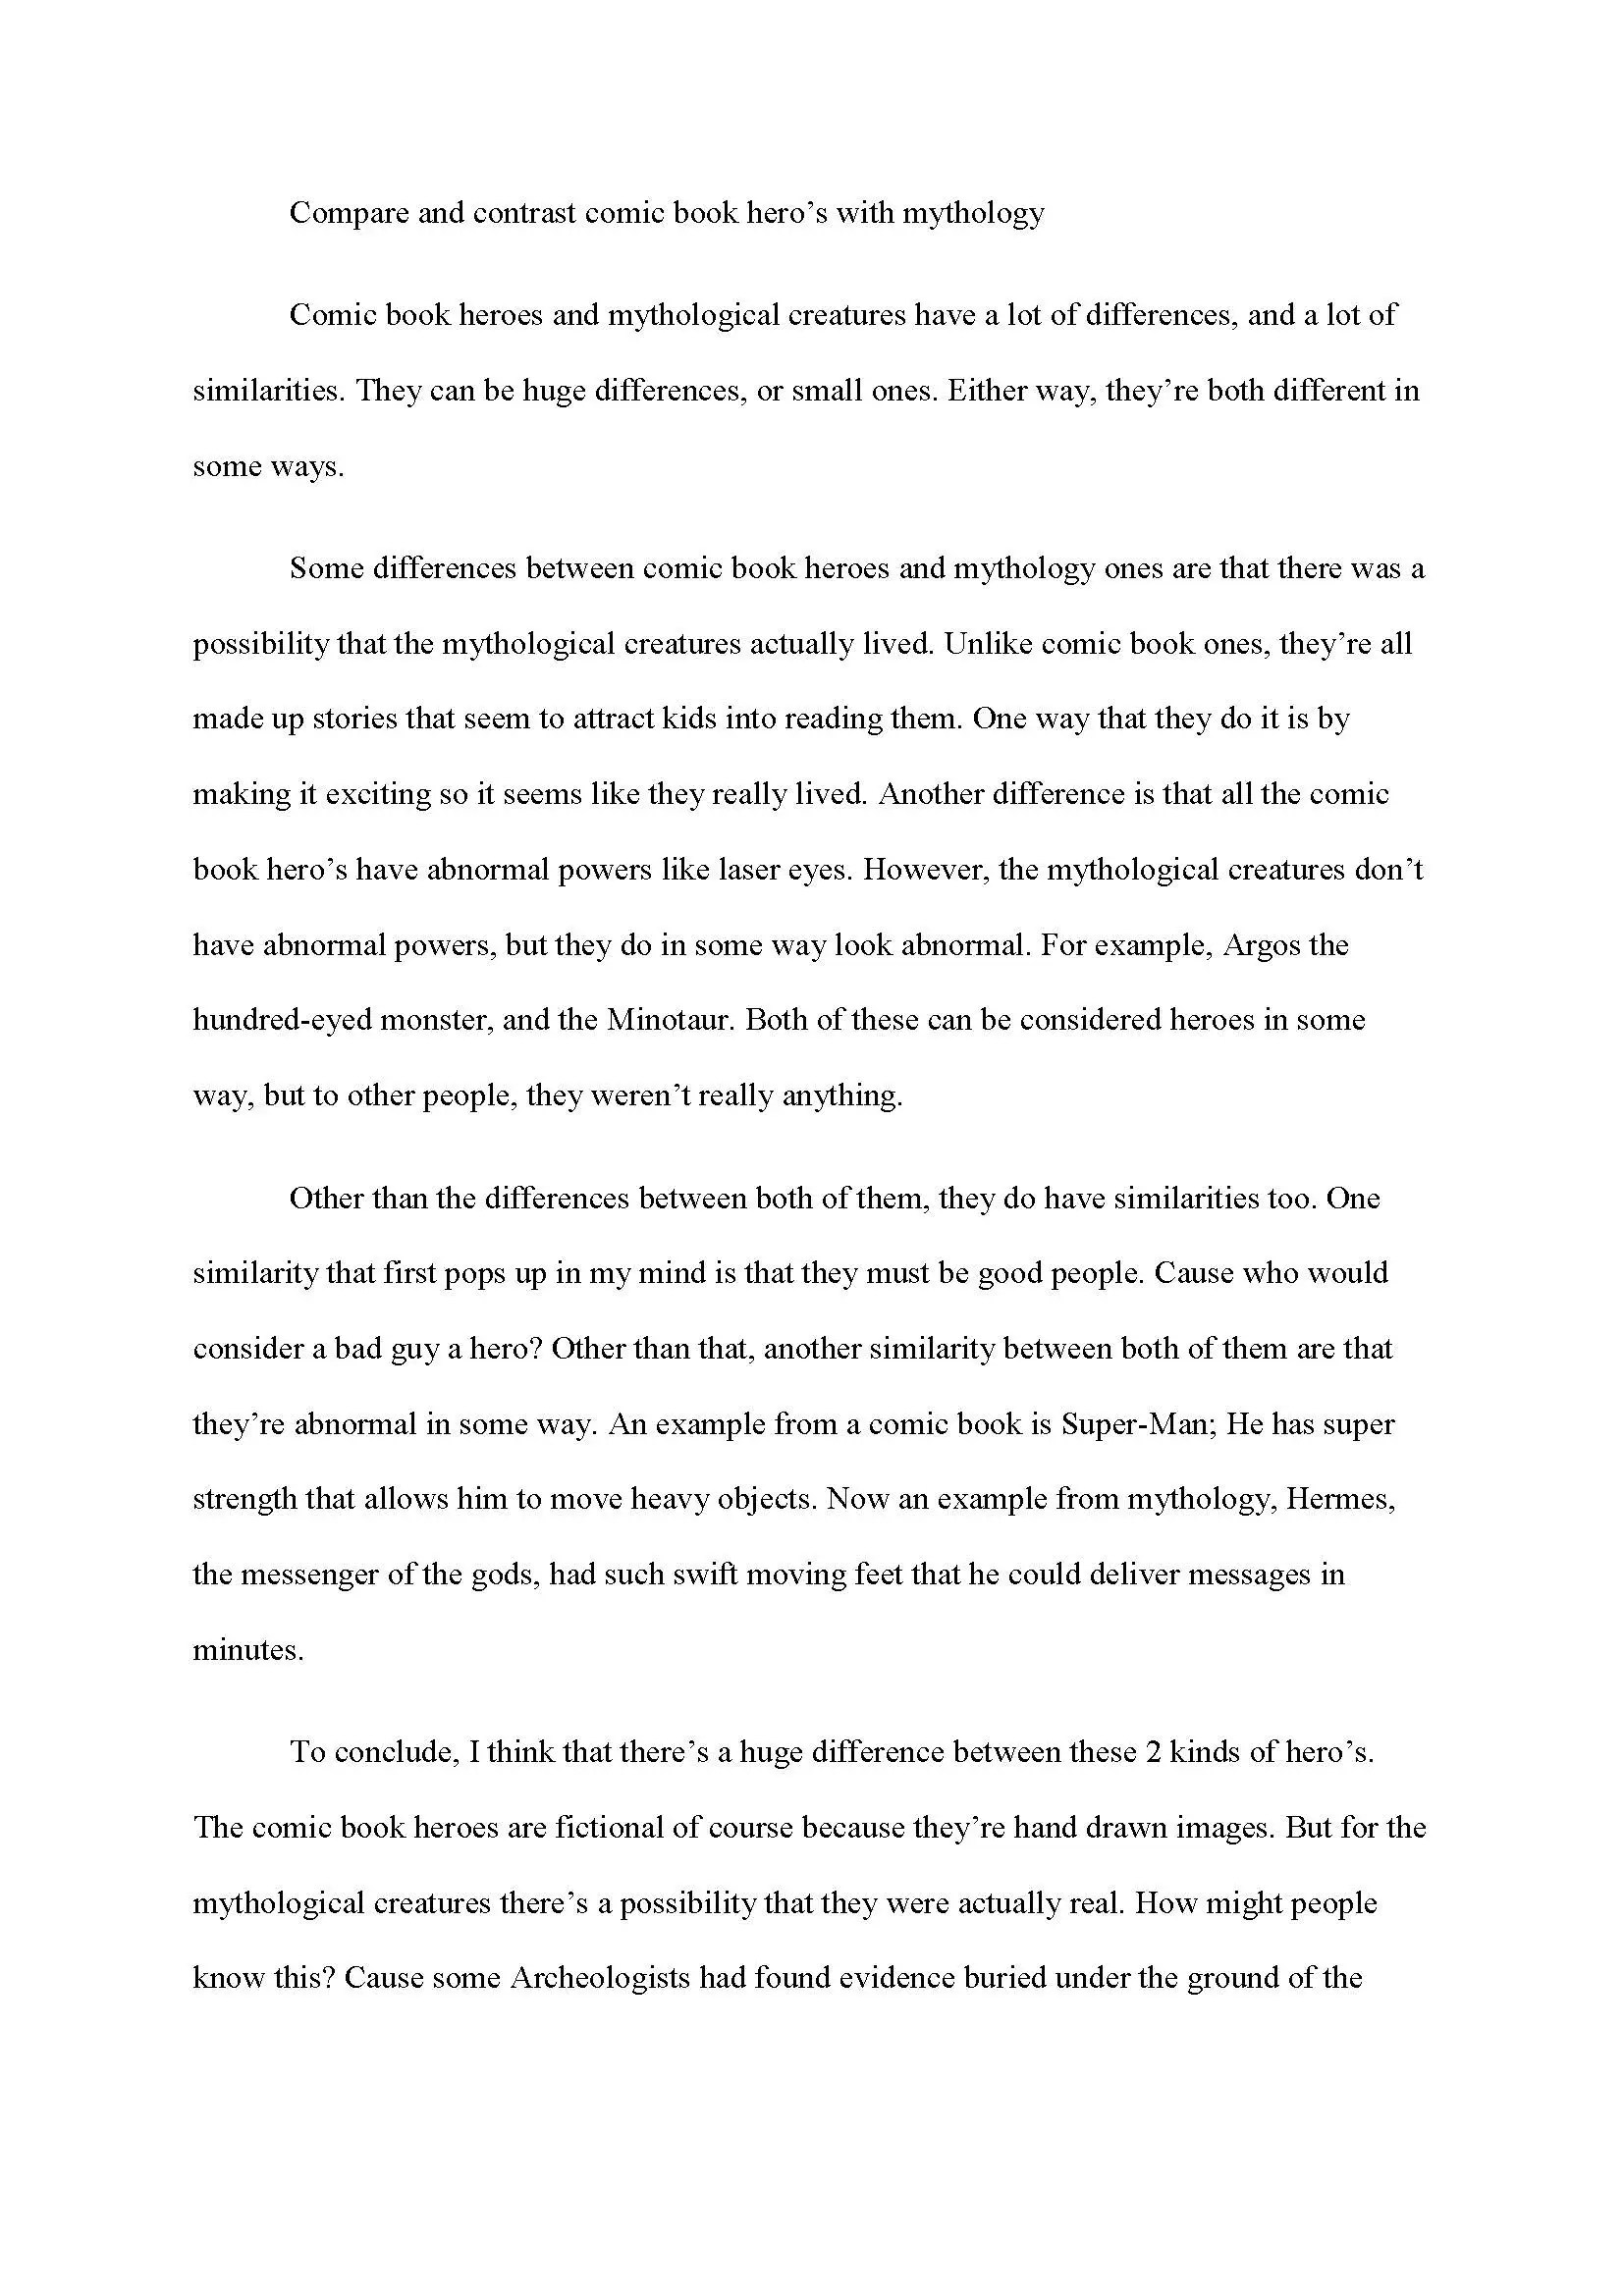 chicago project essay It is in actually the chicago manual style of writing this version of writing style was first introduced by the university of chicago press in 1906 and which is still very much in practice the american style of writing, grammatical and sentence constructions are heavily reliable on this chicago style.